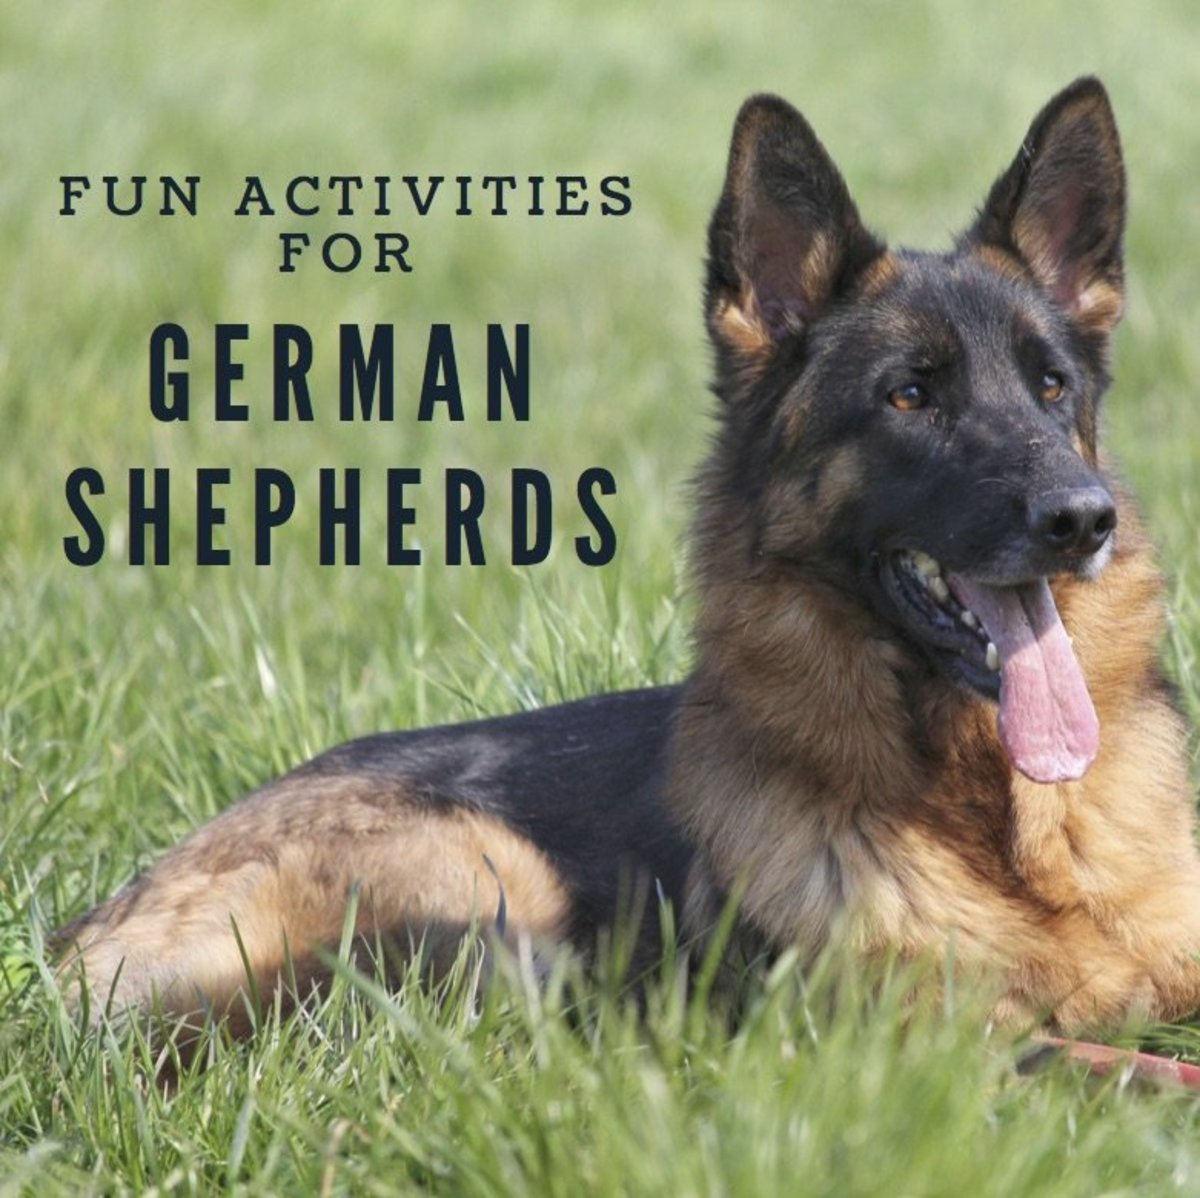 Fun Activities for German Shepherds